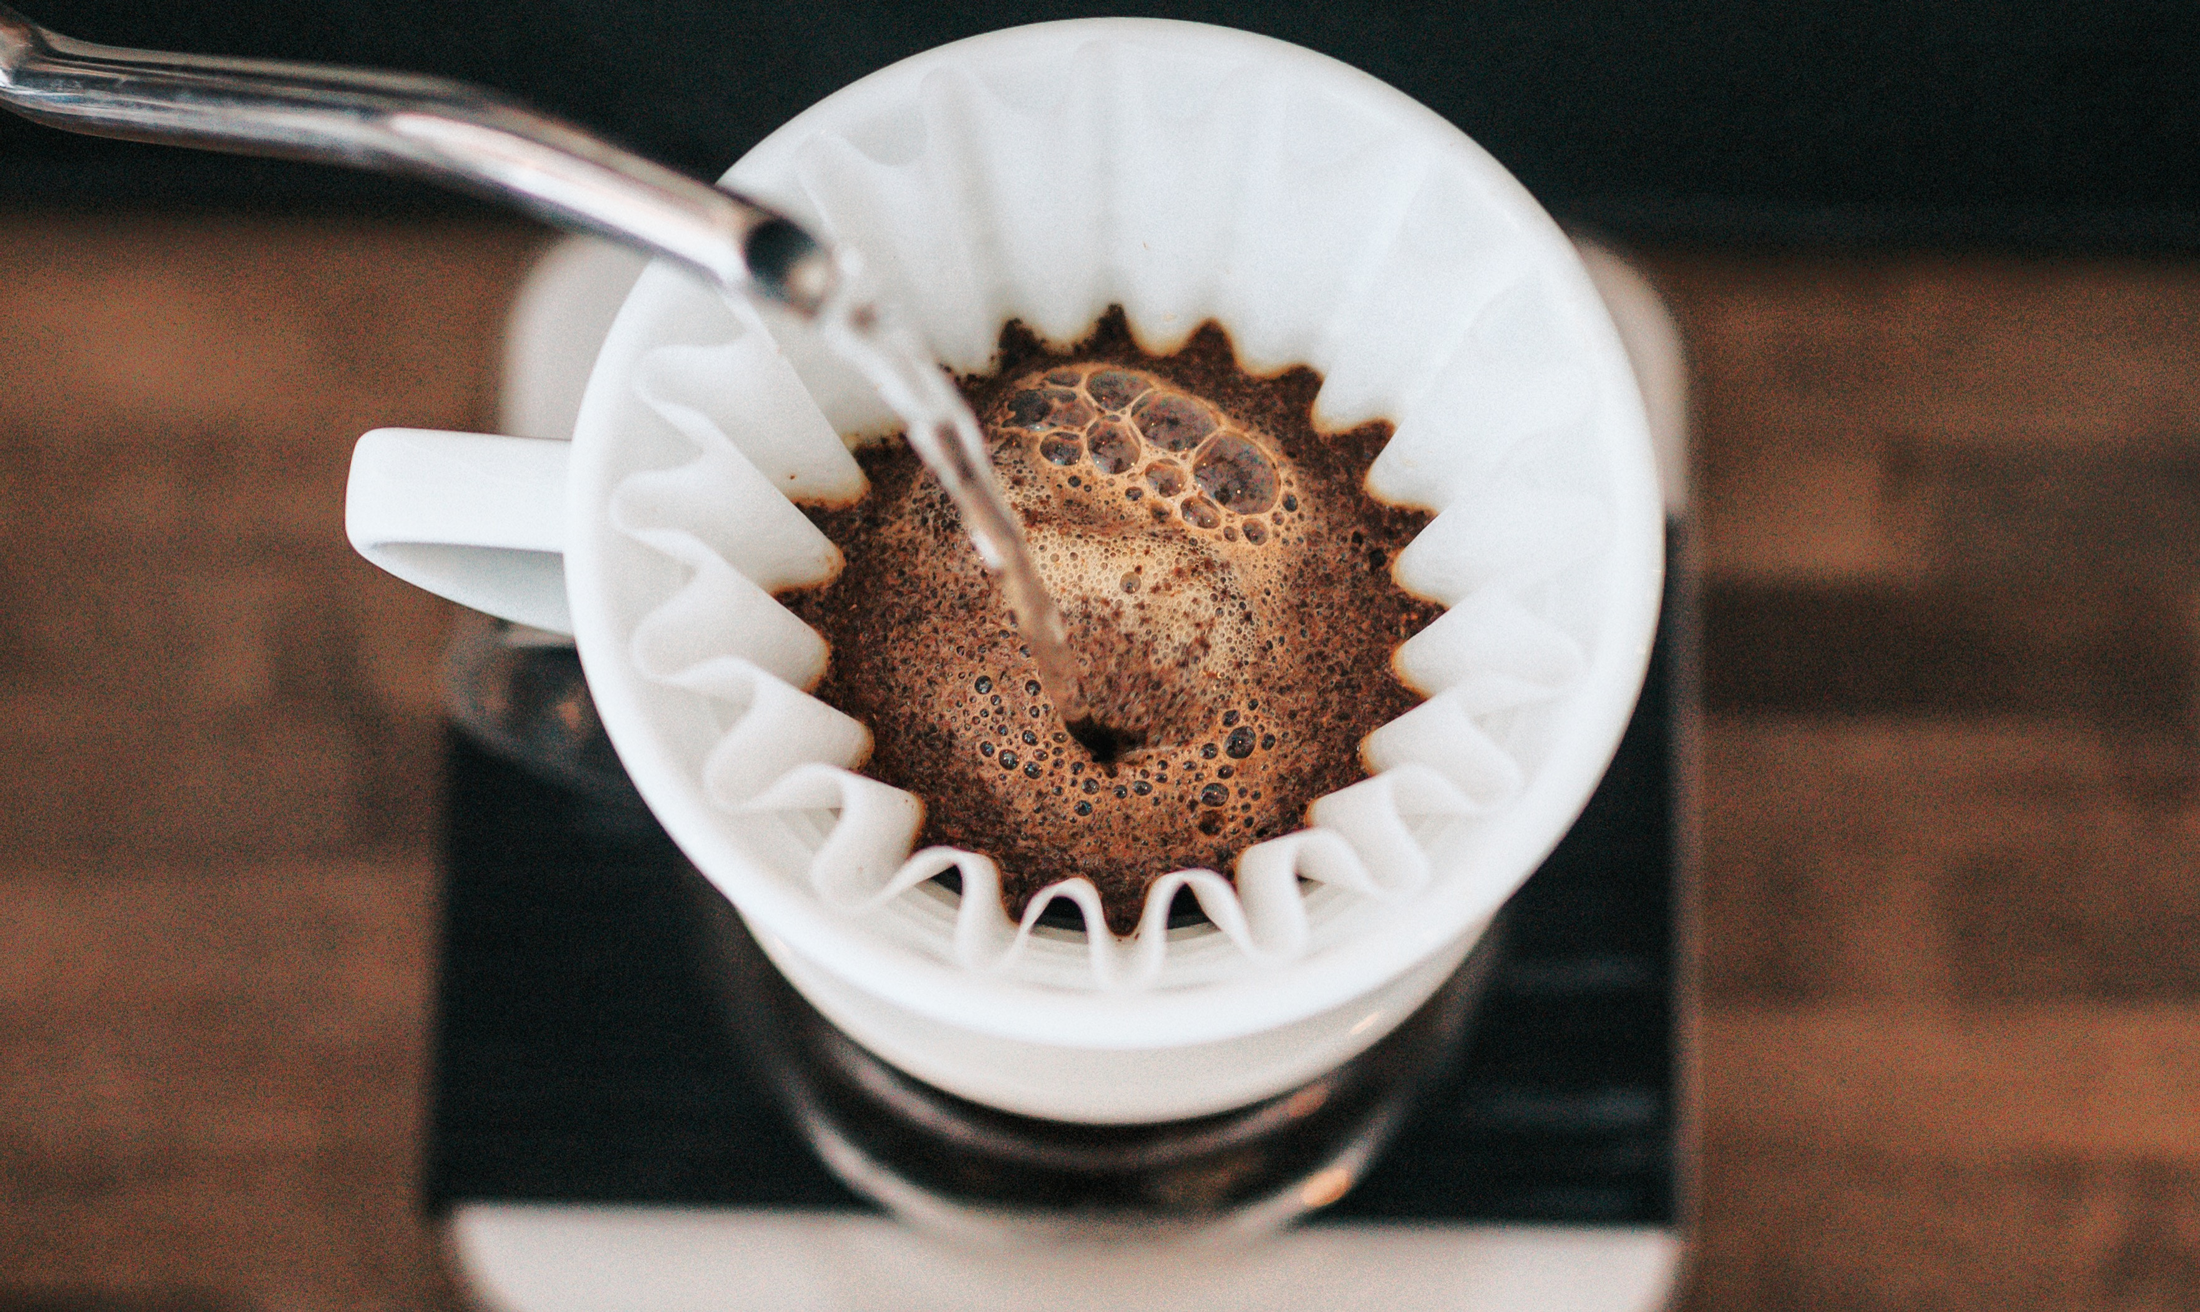 filter, coffee, filtration, barista, pourover, machine, human, debate, brighton, hove, sussex, speciality, artisan, chemex, v60, aeropress, kettle, slow, pour, over, scales,